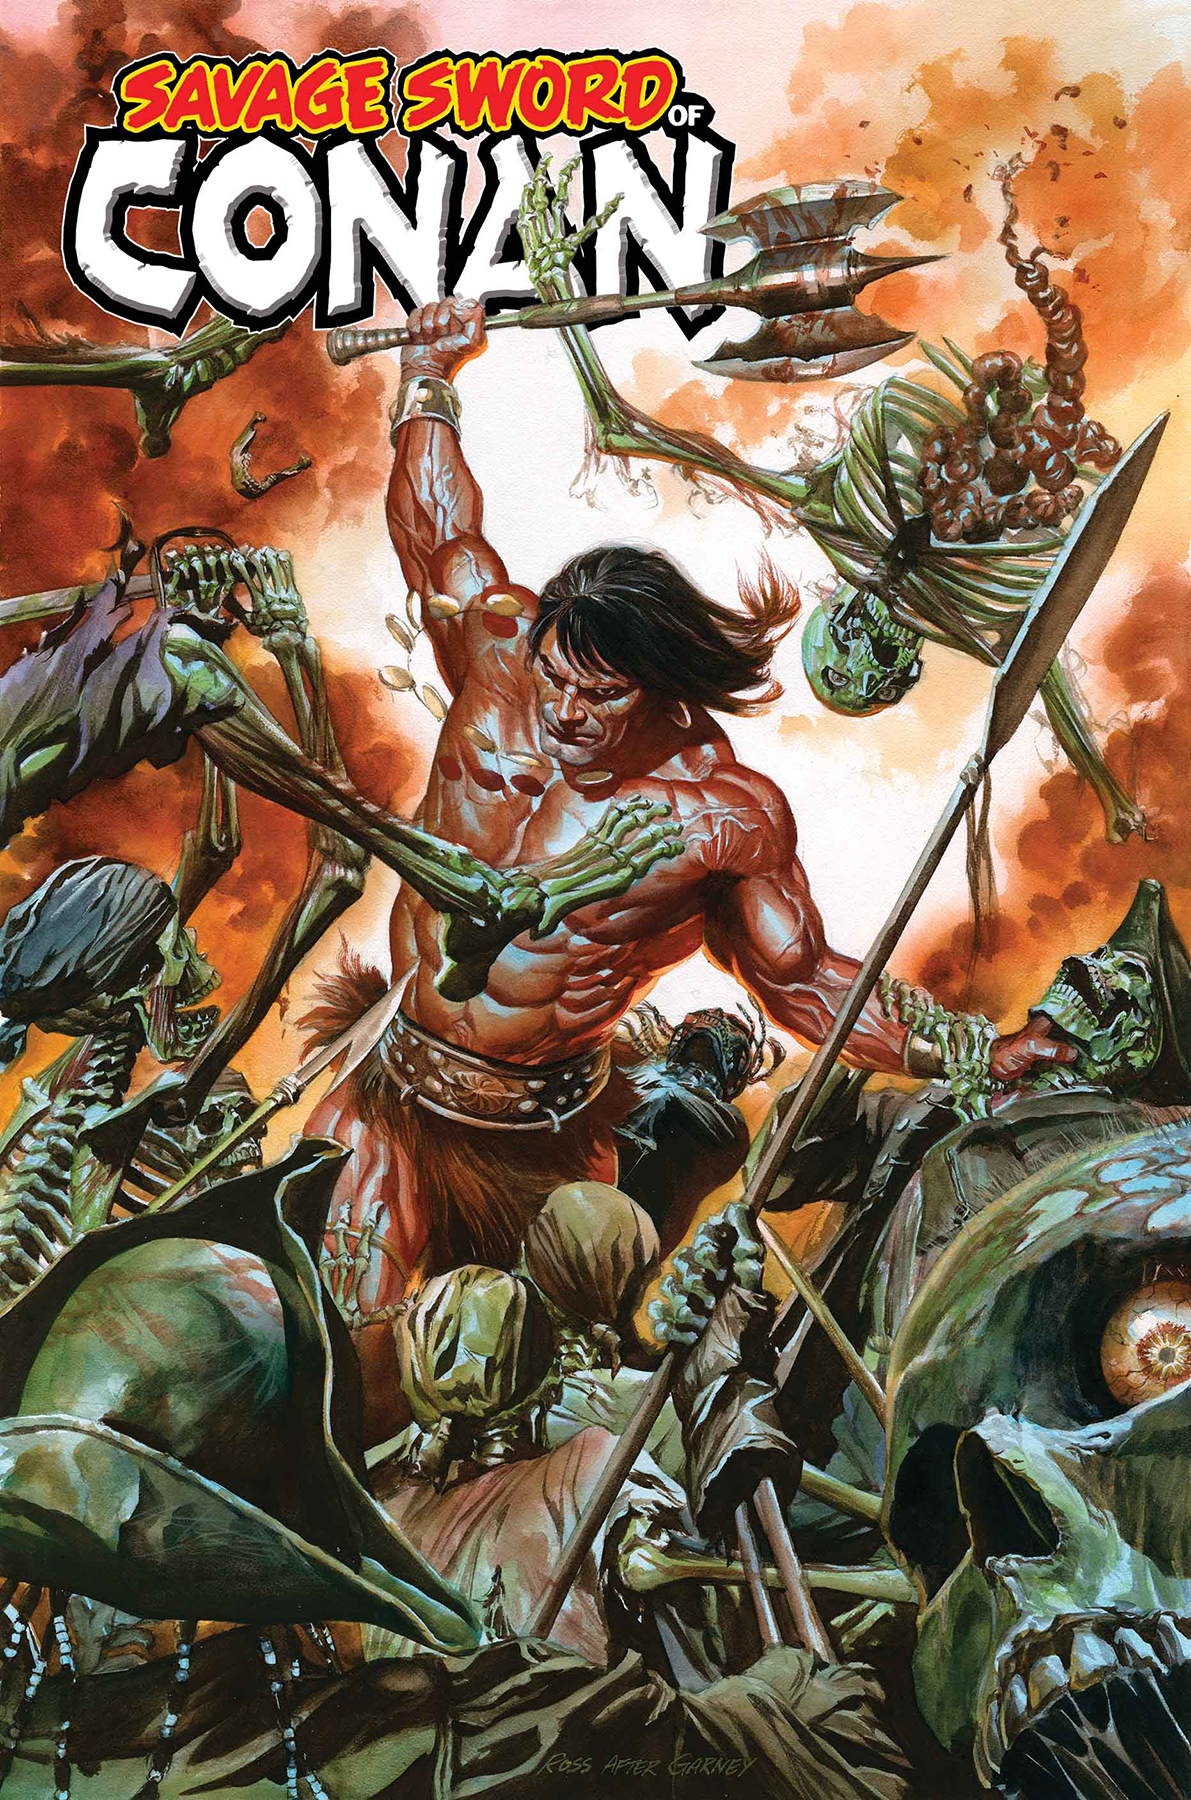 SAVAGE SWORD OF CONAN BY ALEX ROSS POSTER